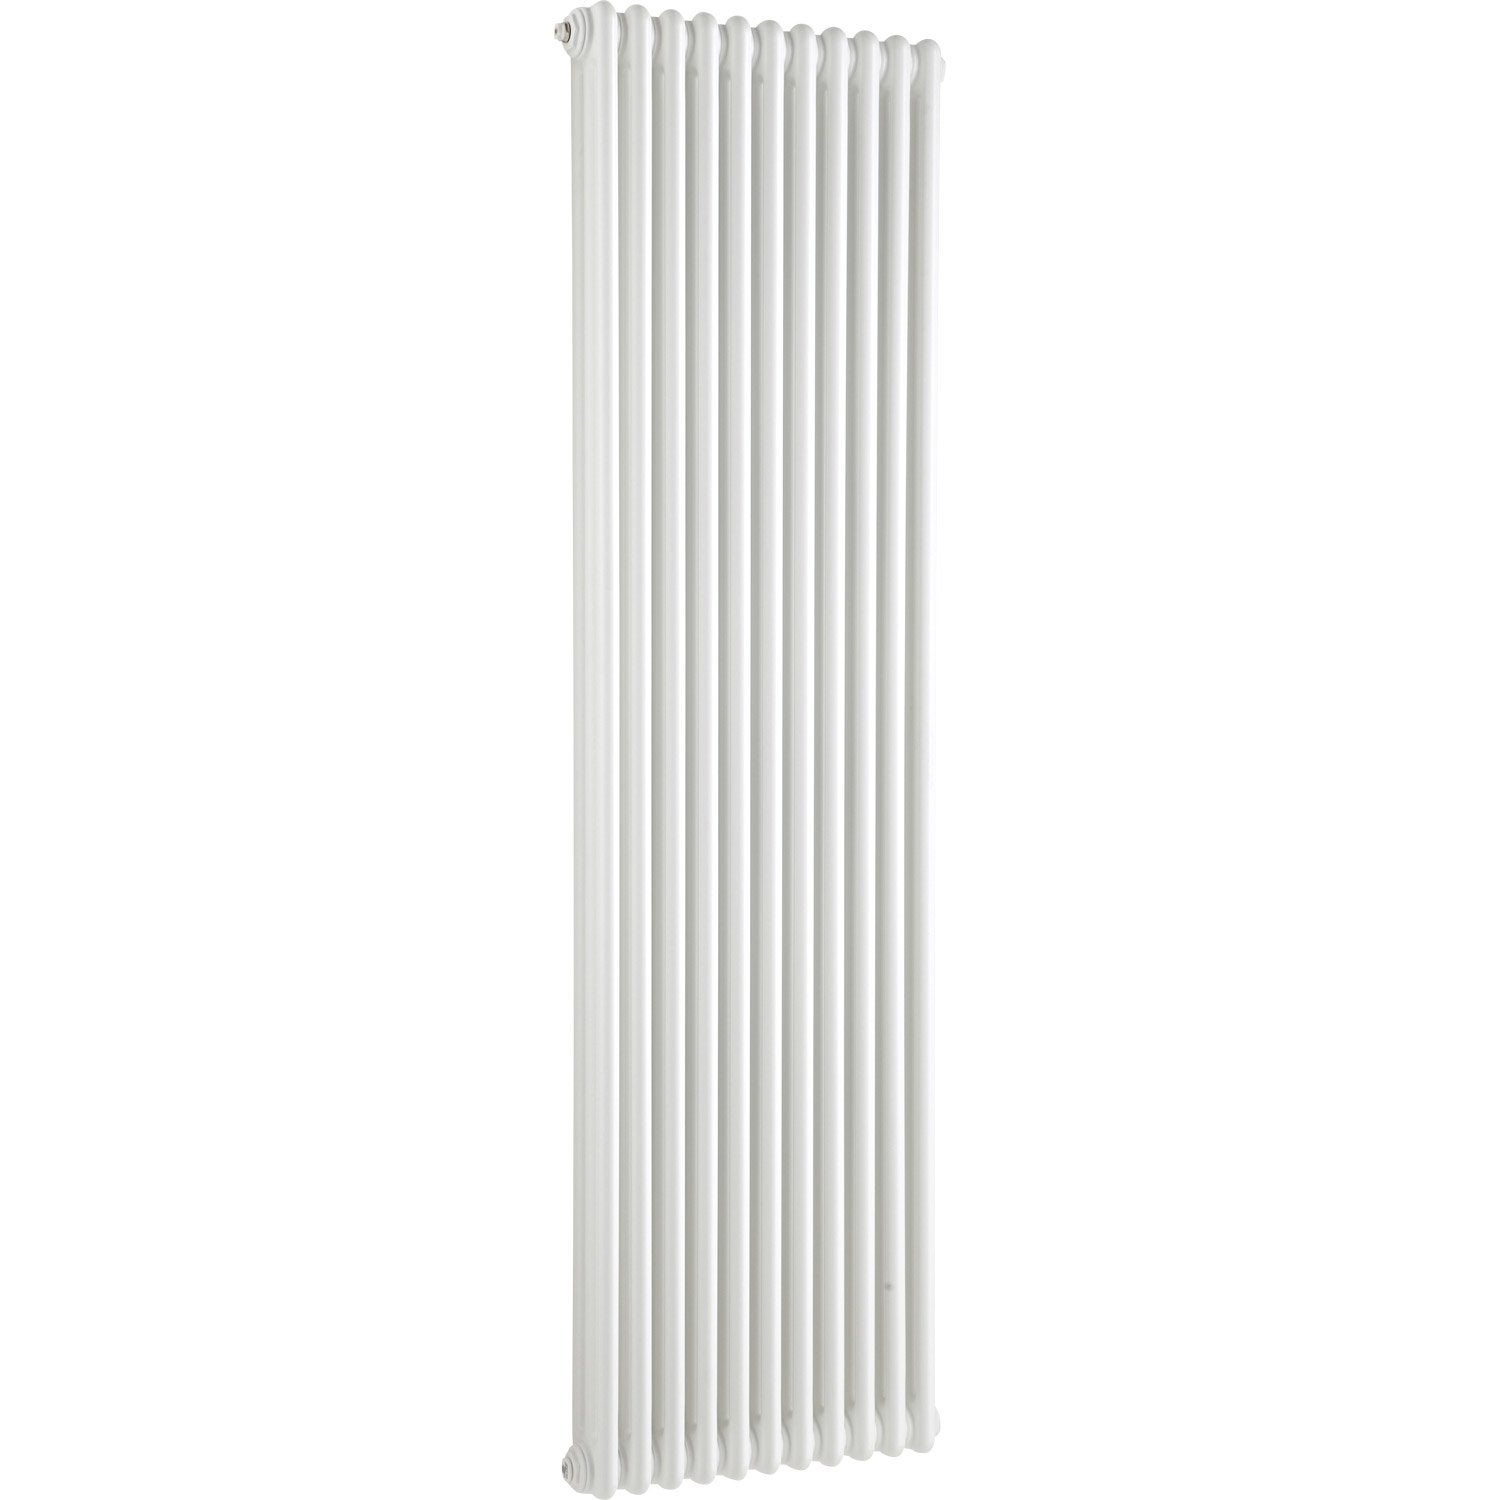 radiateur chauffage central tesi blanc cm 1858 w. Black Bedroom Furniture Sets. Home Design Ideas